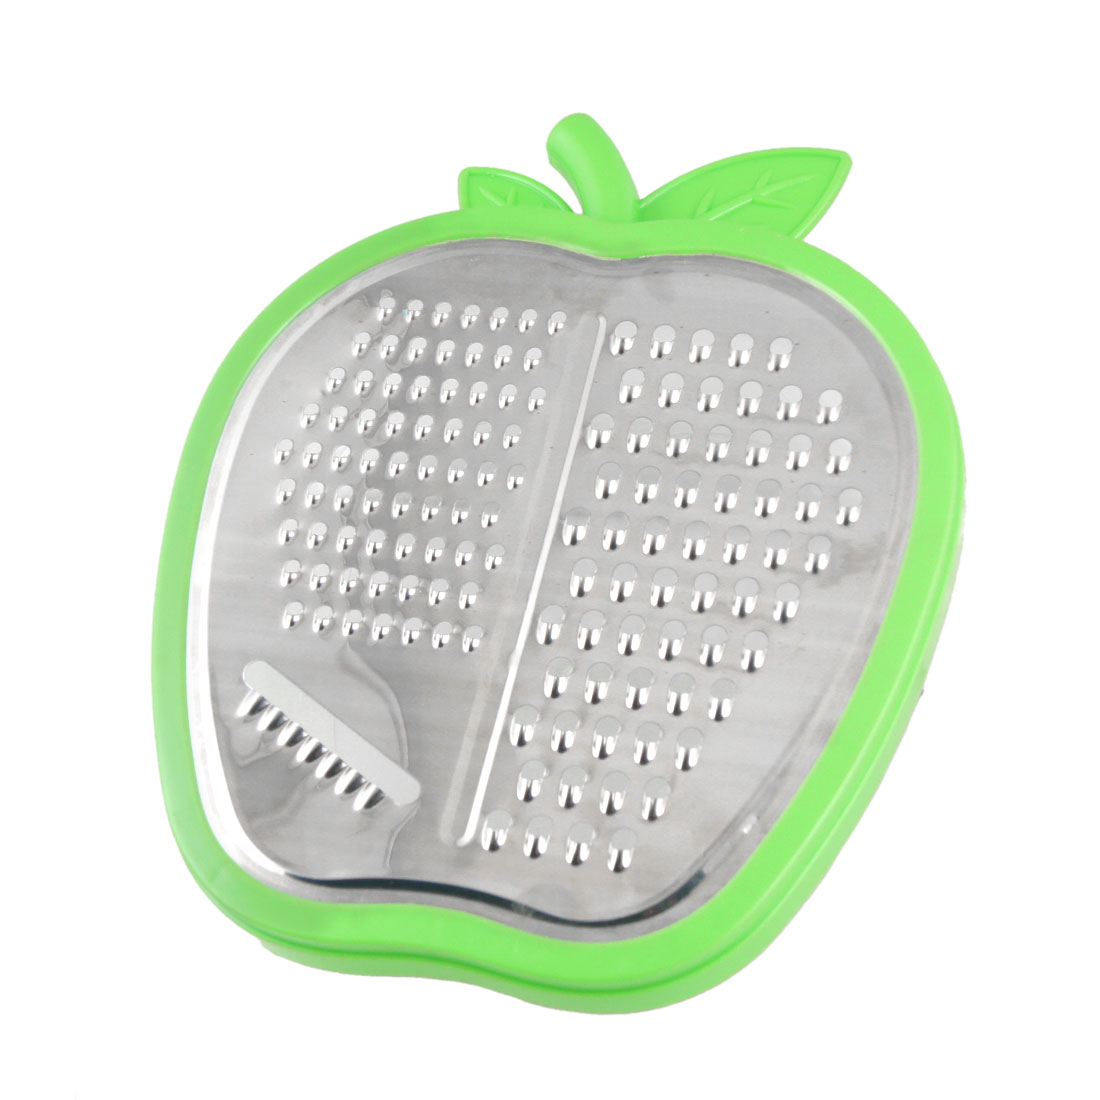 Kitchen Fruit Graters Apple Shape Vegetable Peeler Silver Tone Green Clear